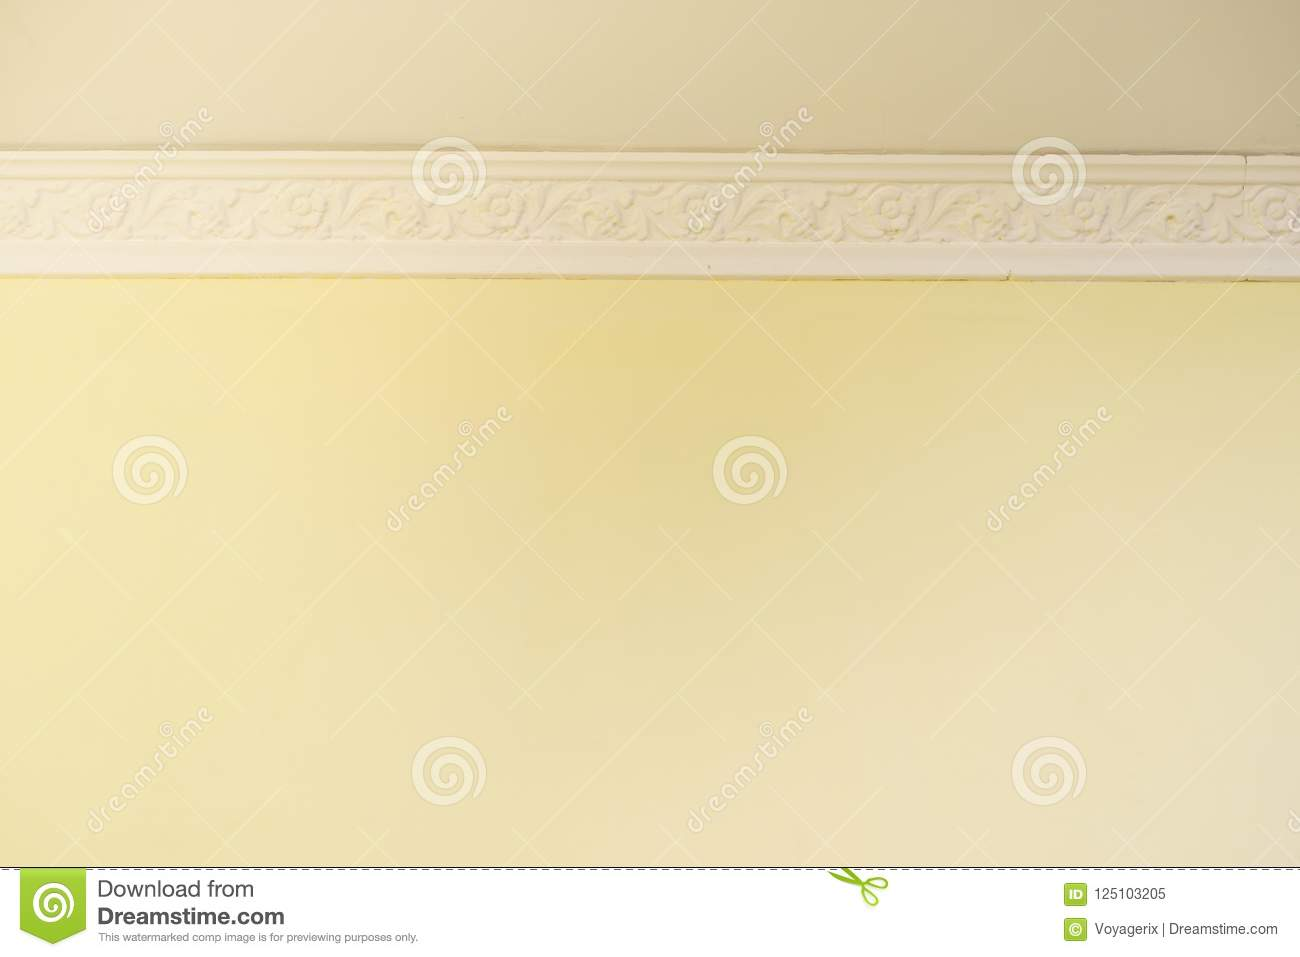 White cornce on wall stock image. Image of yellow, detail - 125103205